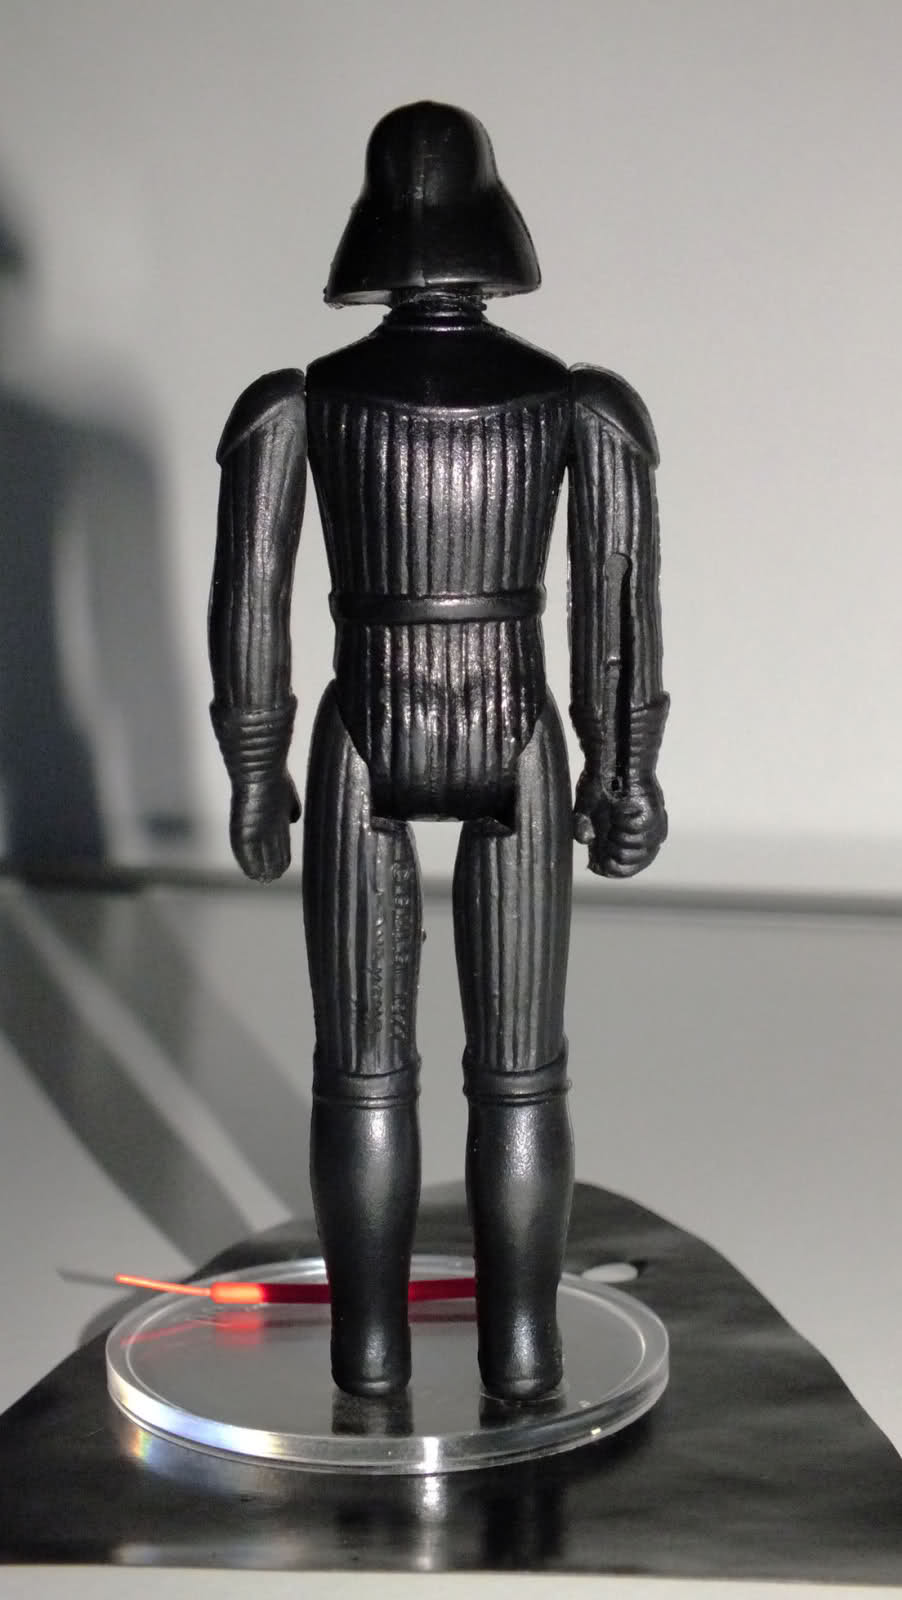 Are either of these 'Clipper' Darth Vader Figures? 2a5nqll